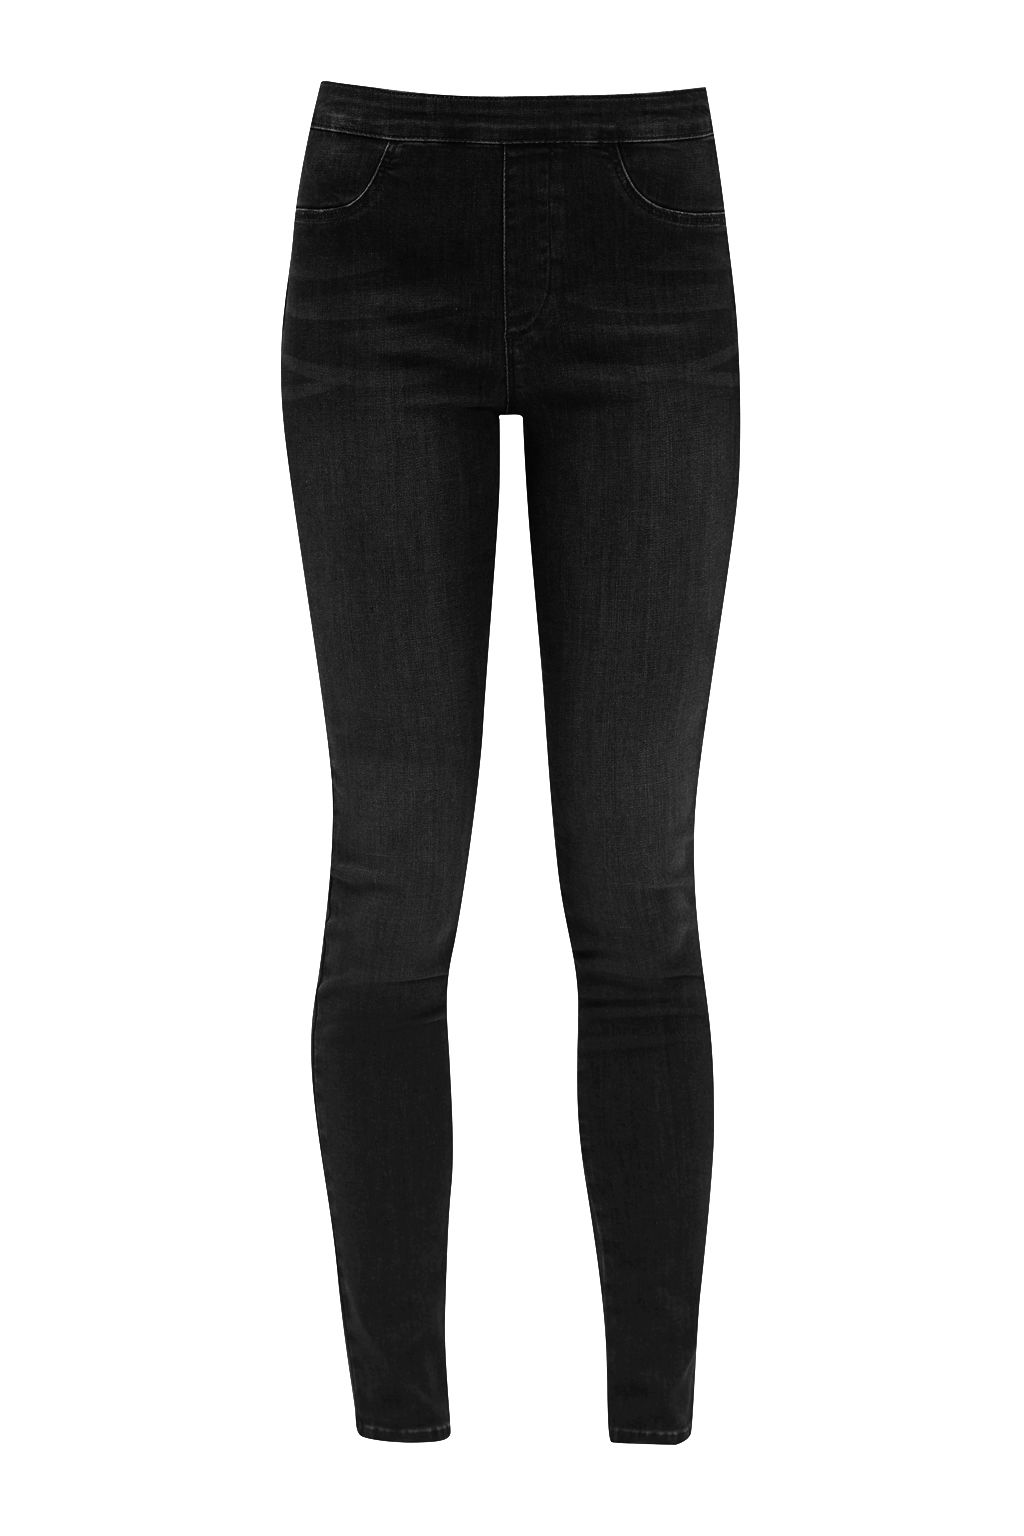 French Connection The Rebound Pull On Leggings, Black